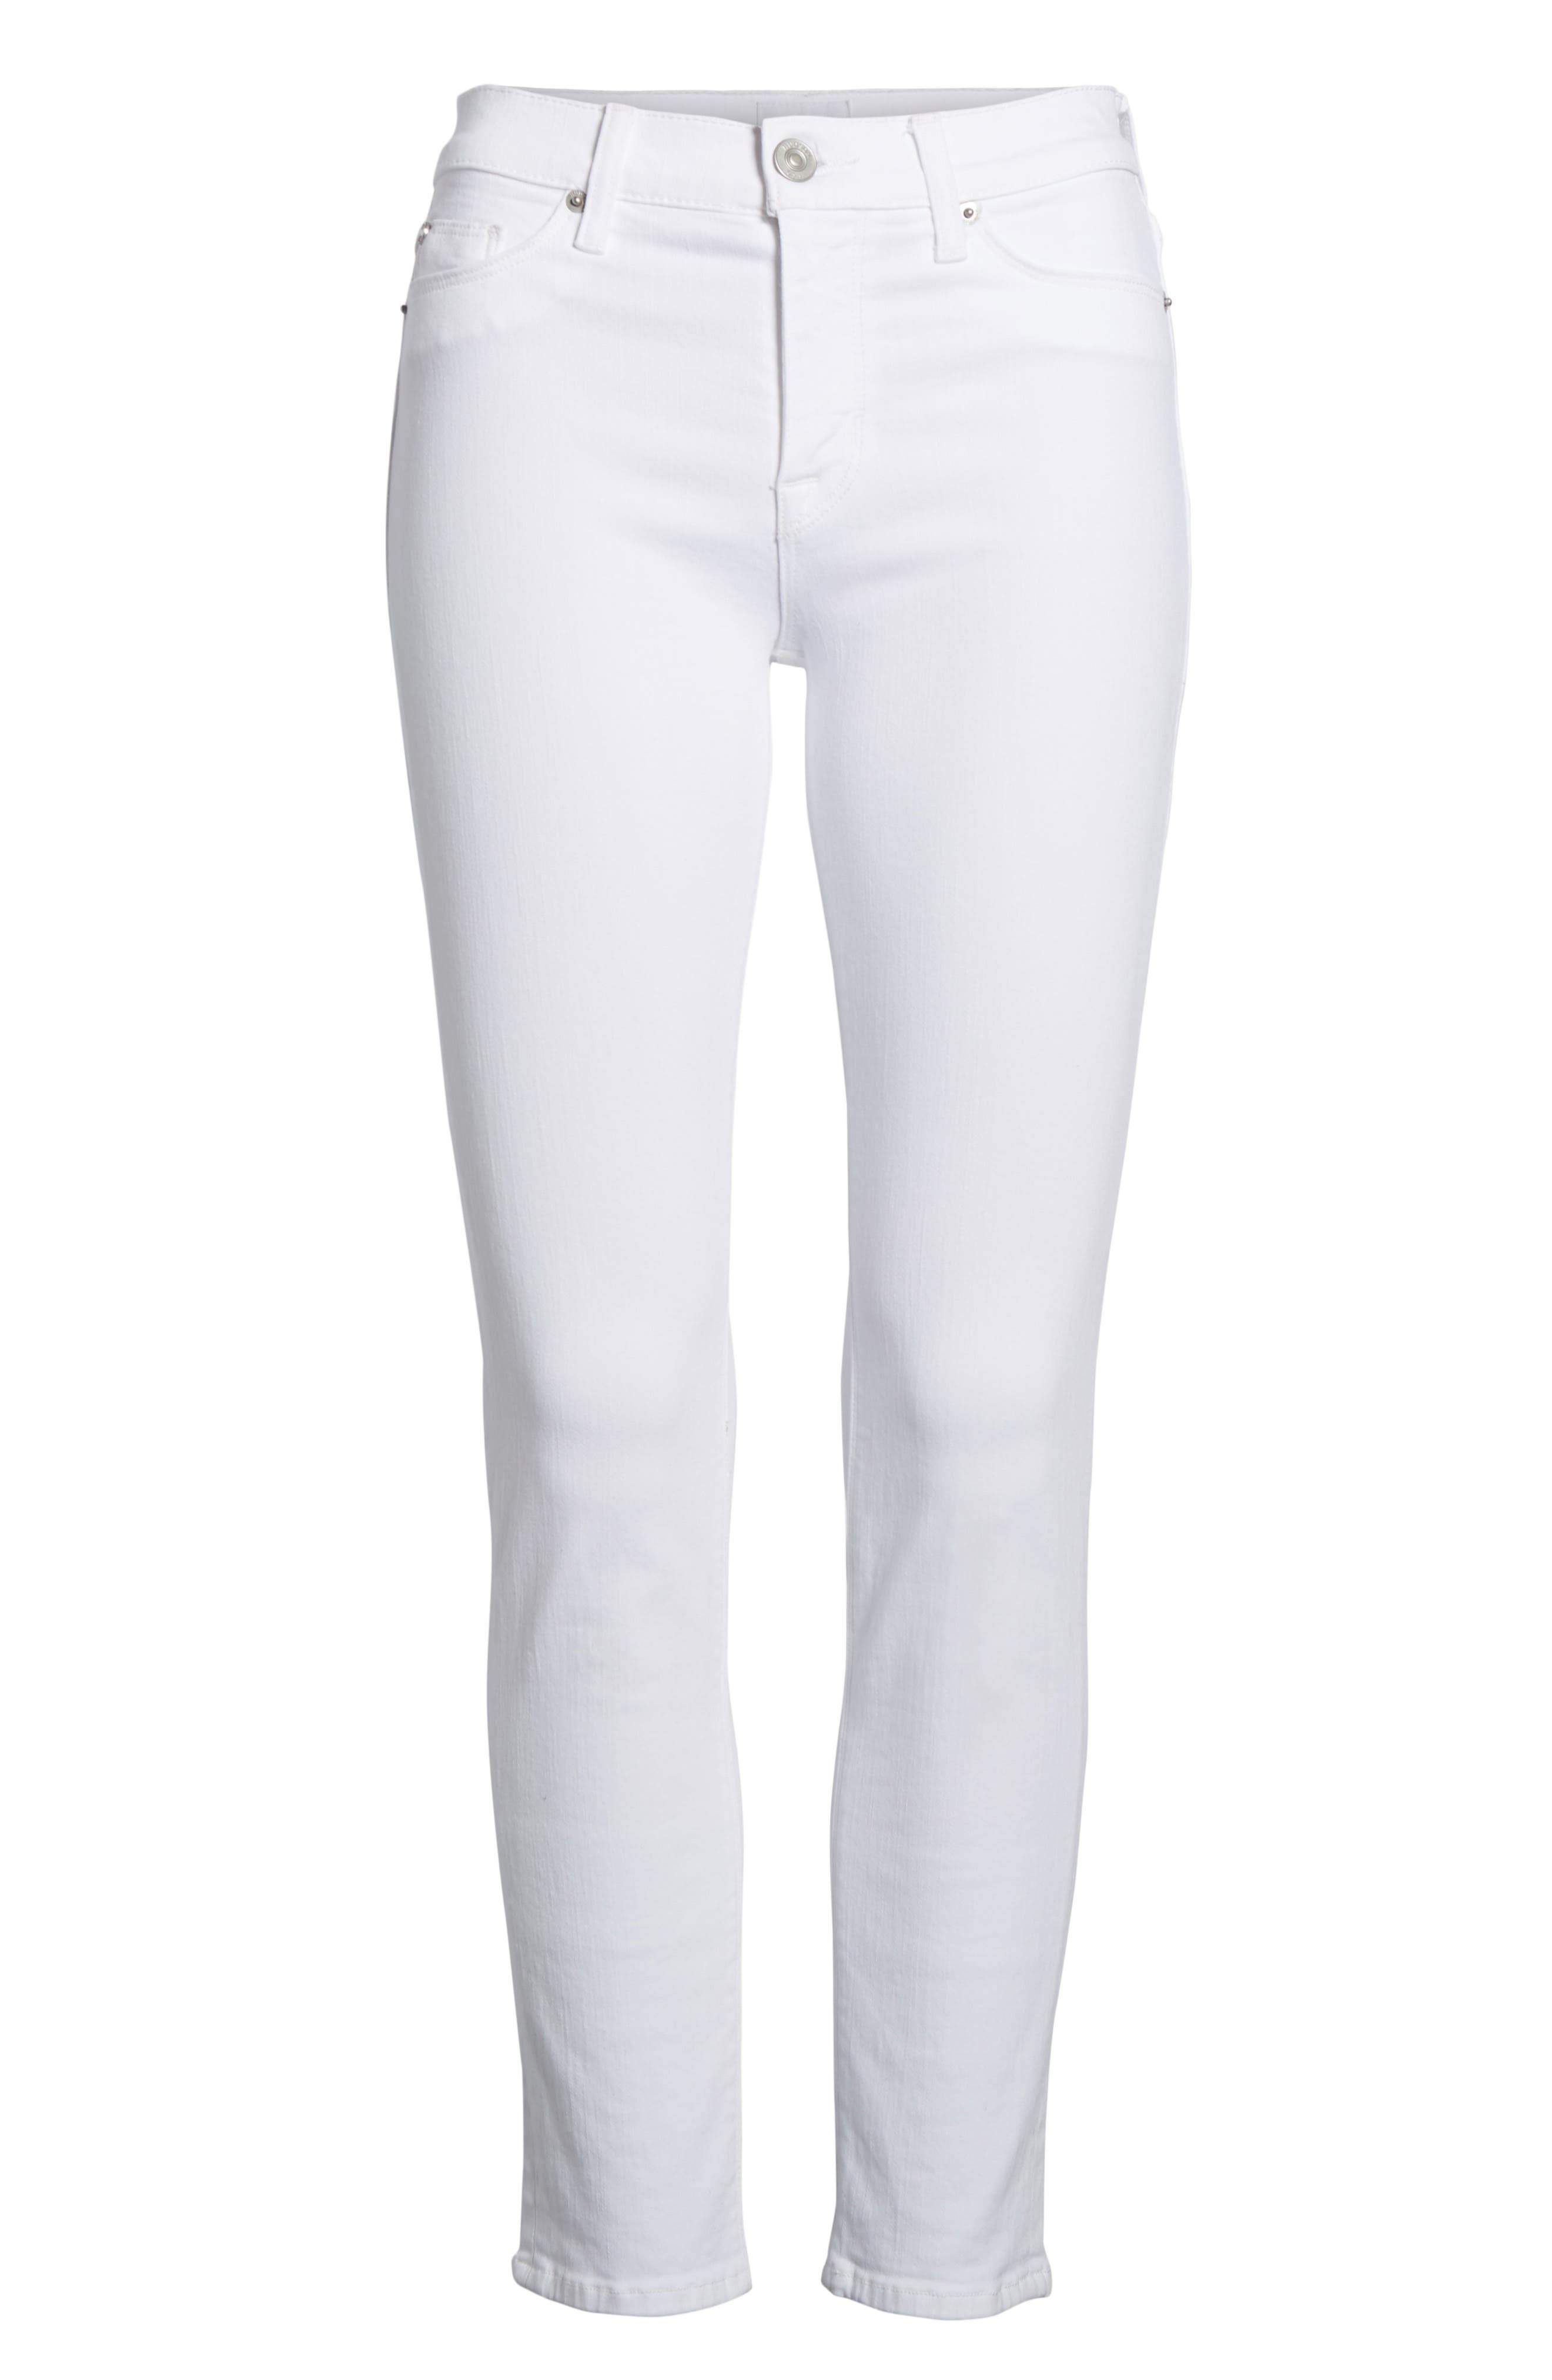 Tally Ankle Skinny Jeans,                             Alternate thumbnail 12, color,